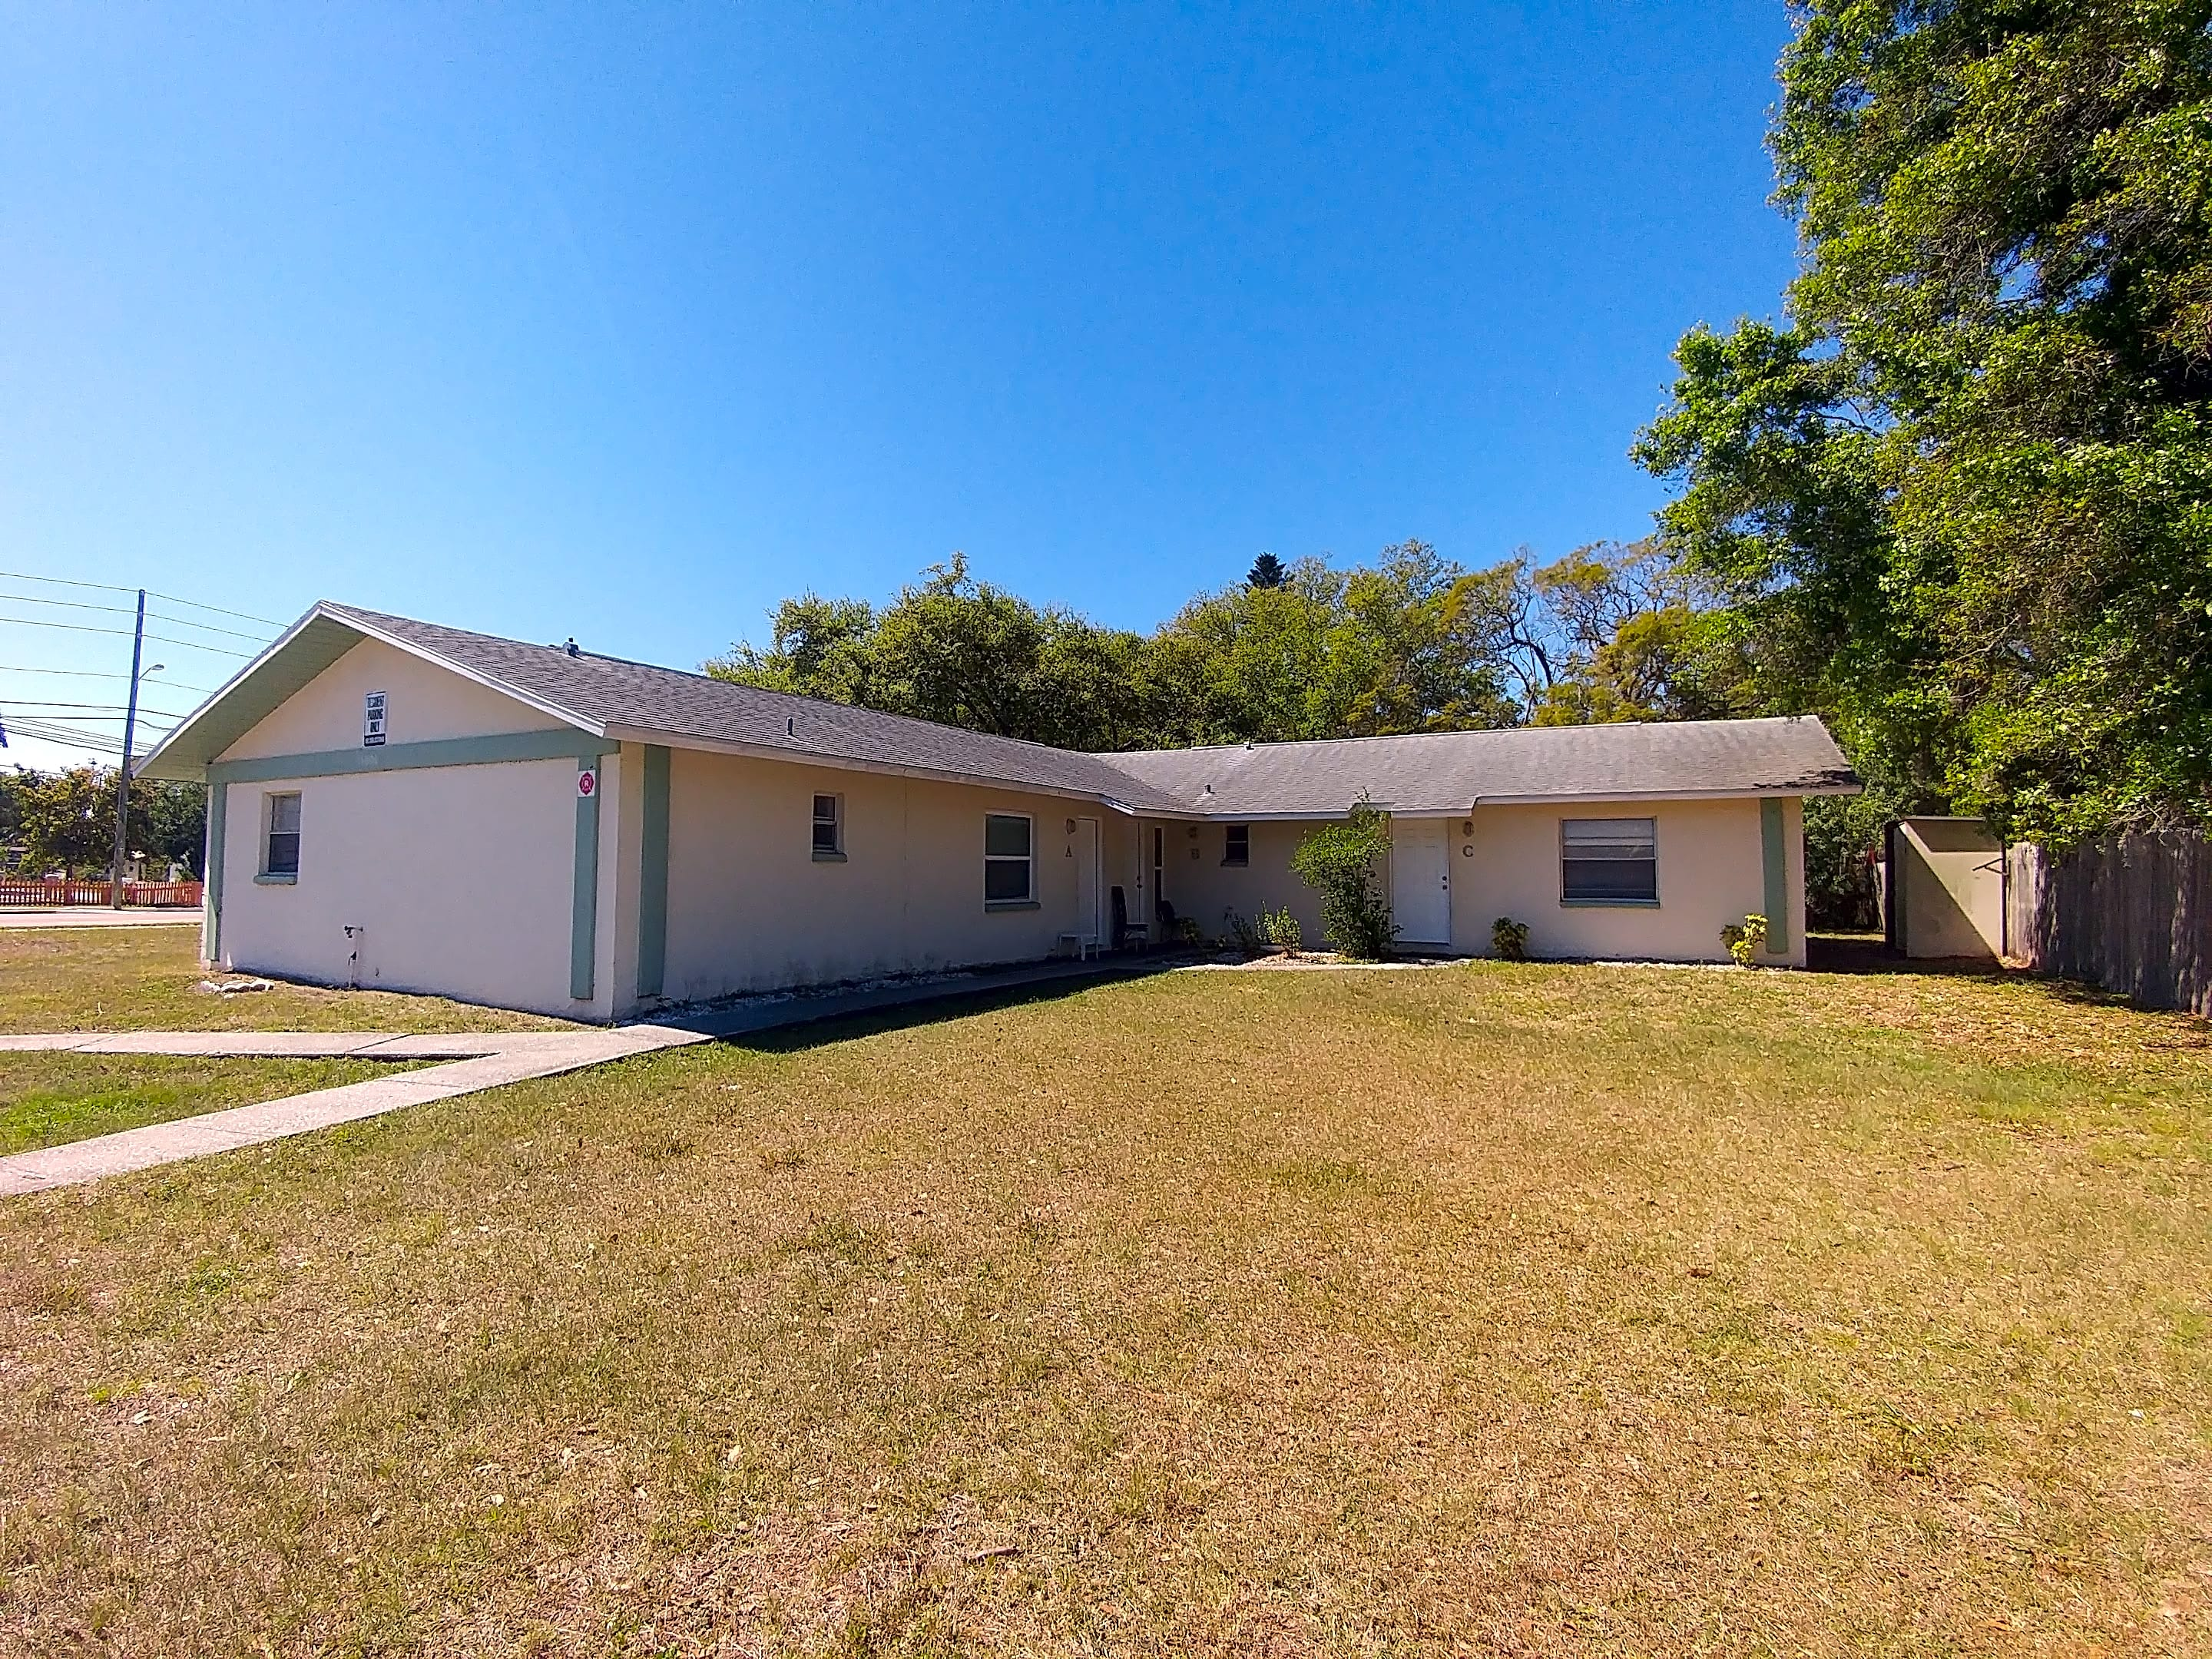 Duplex for Rent in Clearwater